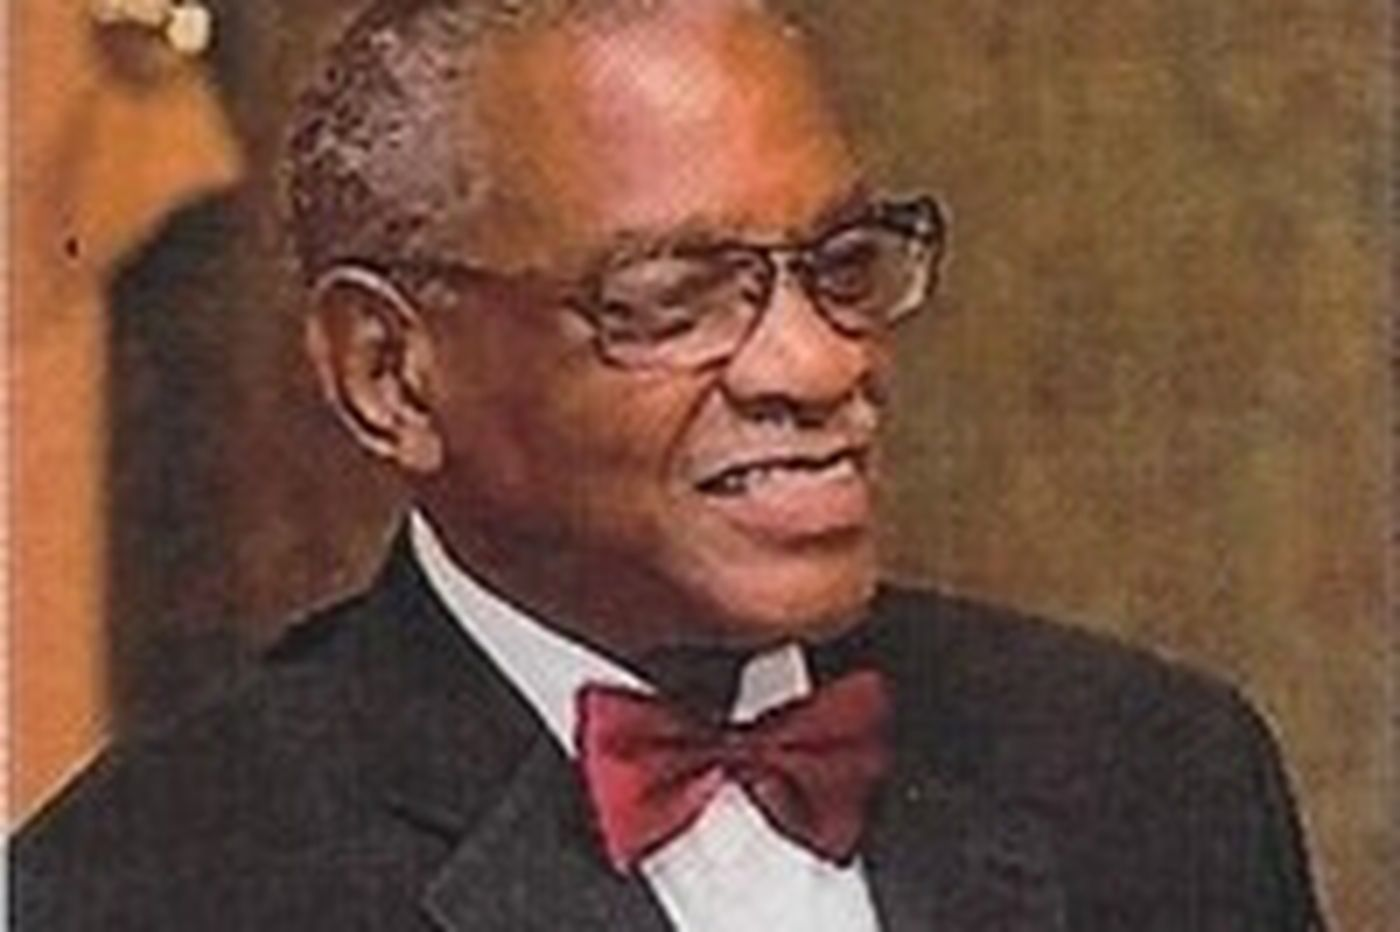 Rev. Leonard L. Smalls, Baptist pastor lauded as 'a warrior for the Lord,' dies at 90